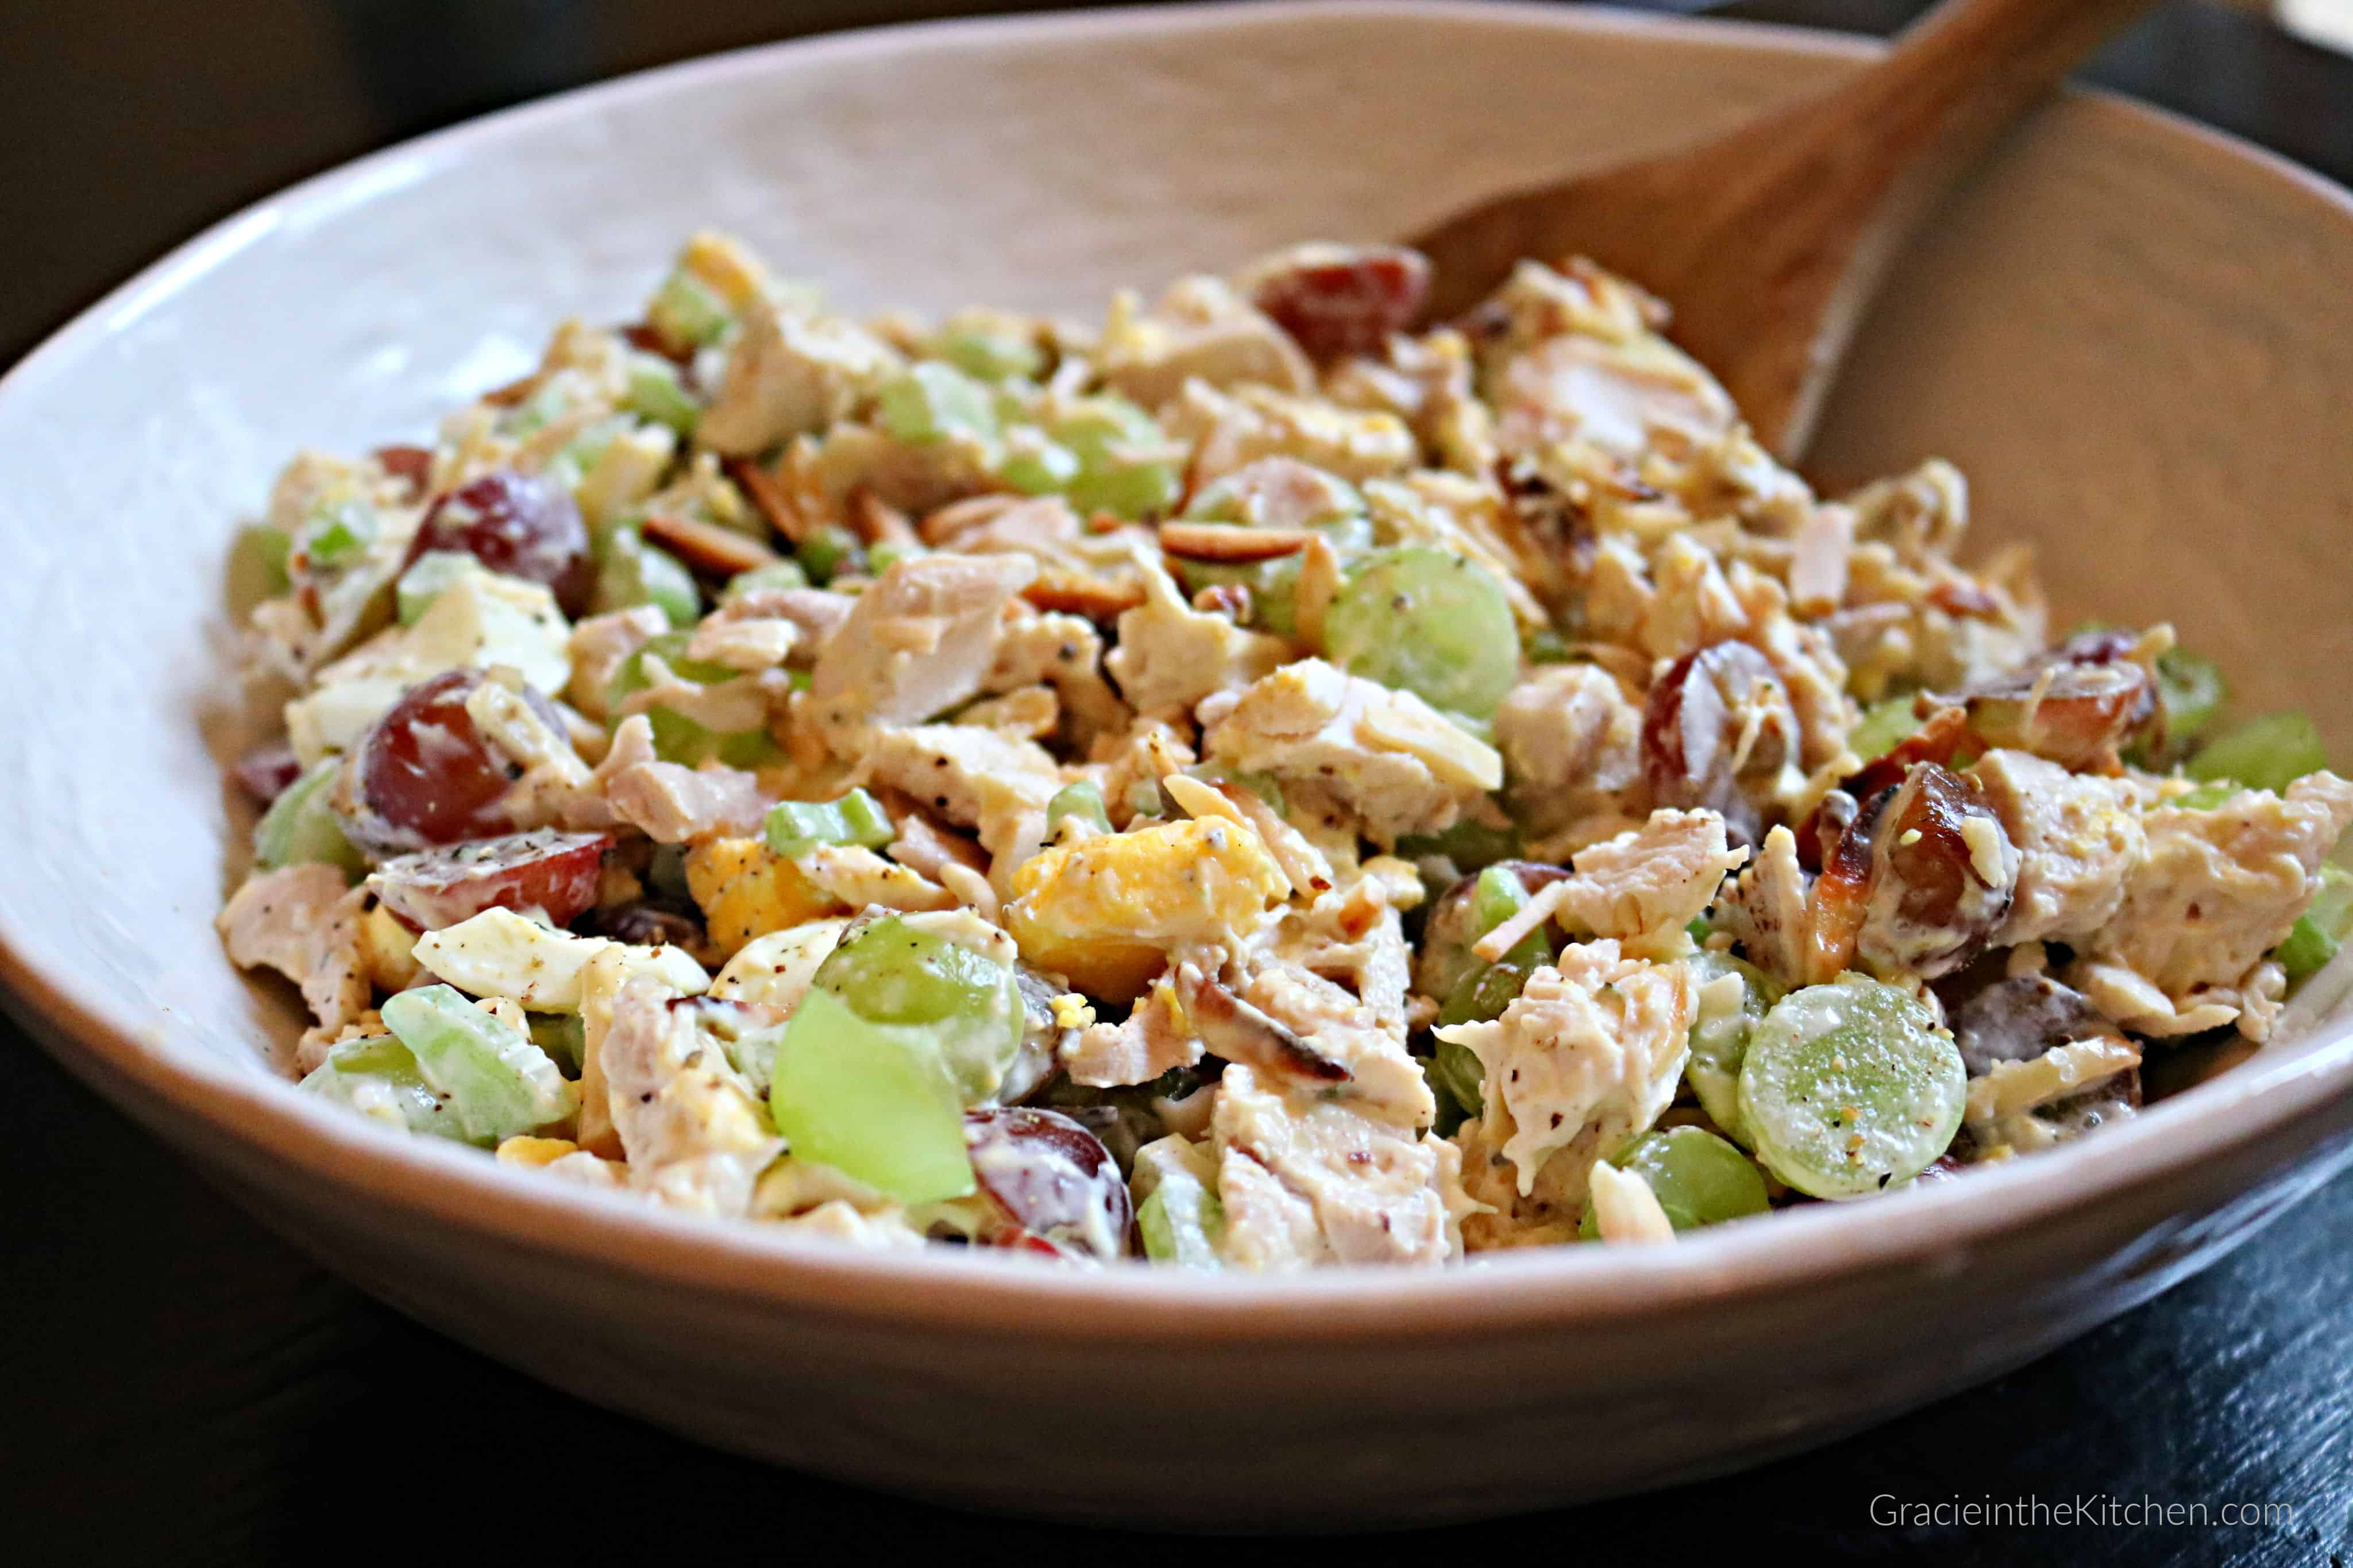 The BEST Almond Chicken Salad Recipe- So easy and delicious with chicken, almonds, sweet grapes, and more!